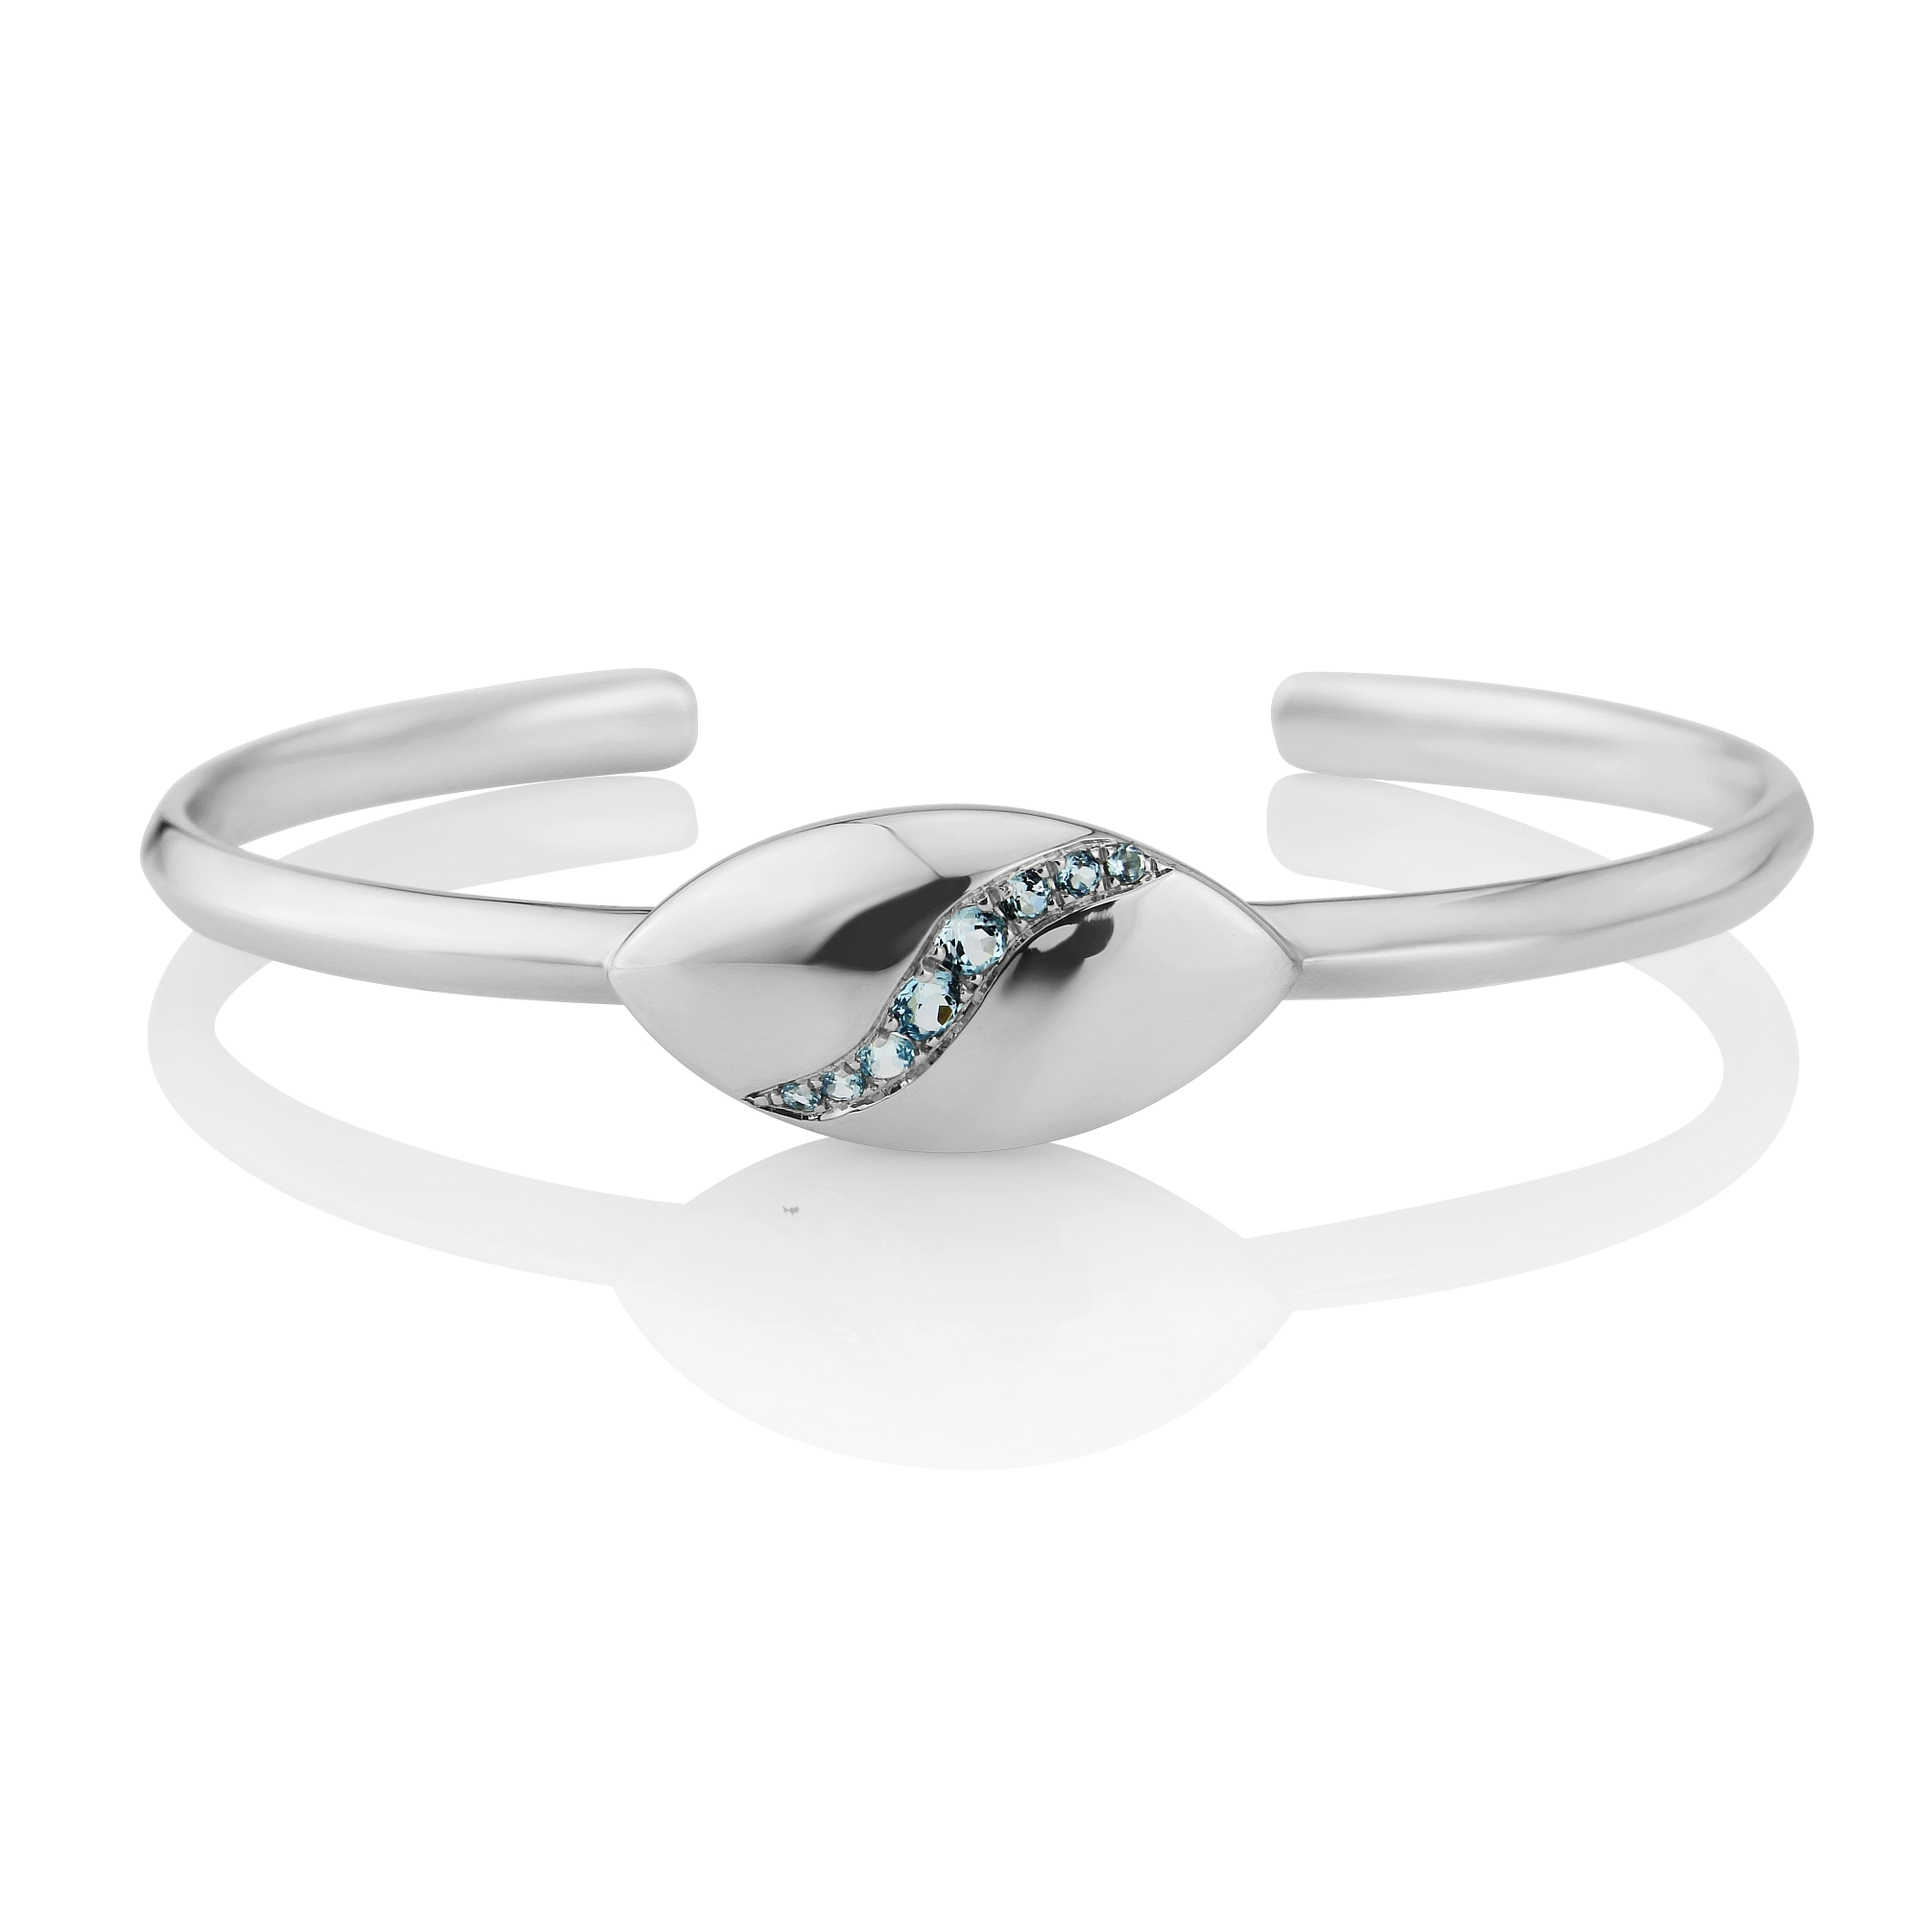 Rudells Dune Silver and Blue Topaz bangle